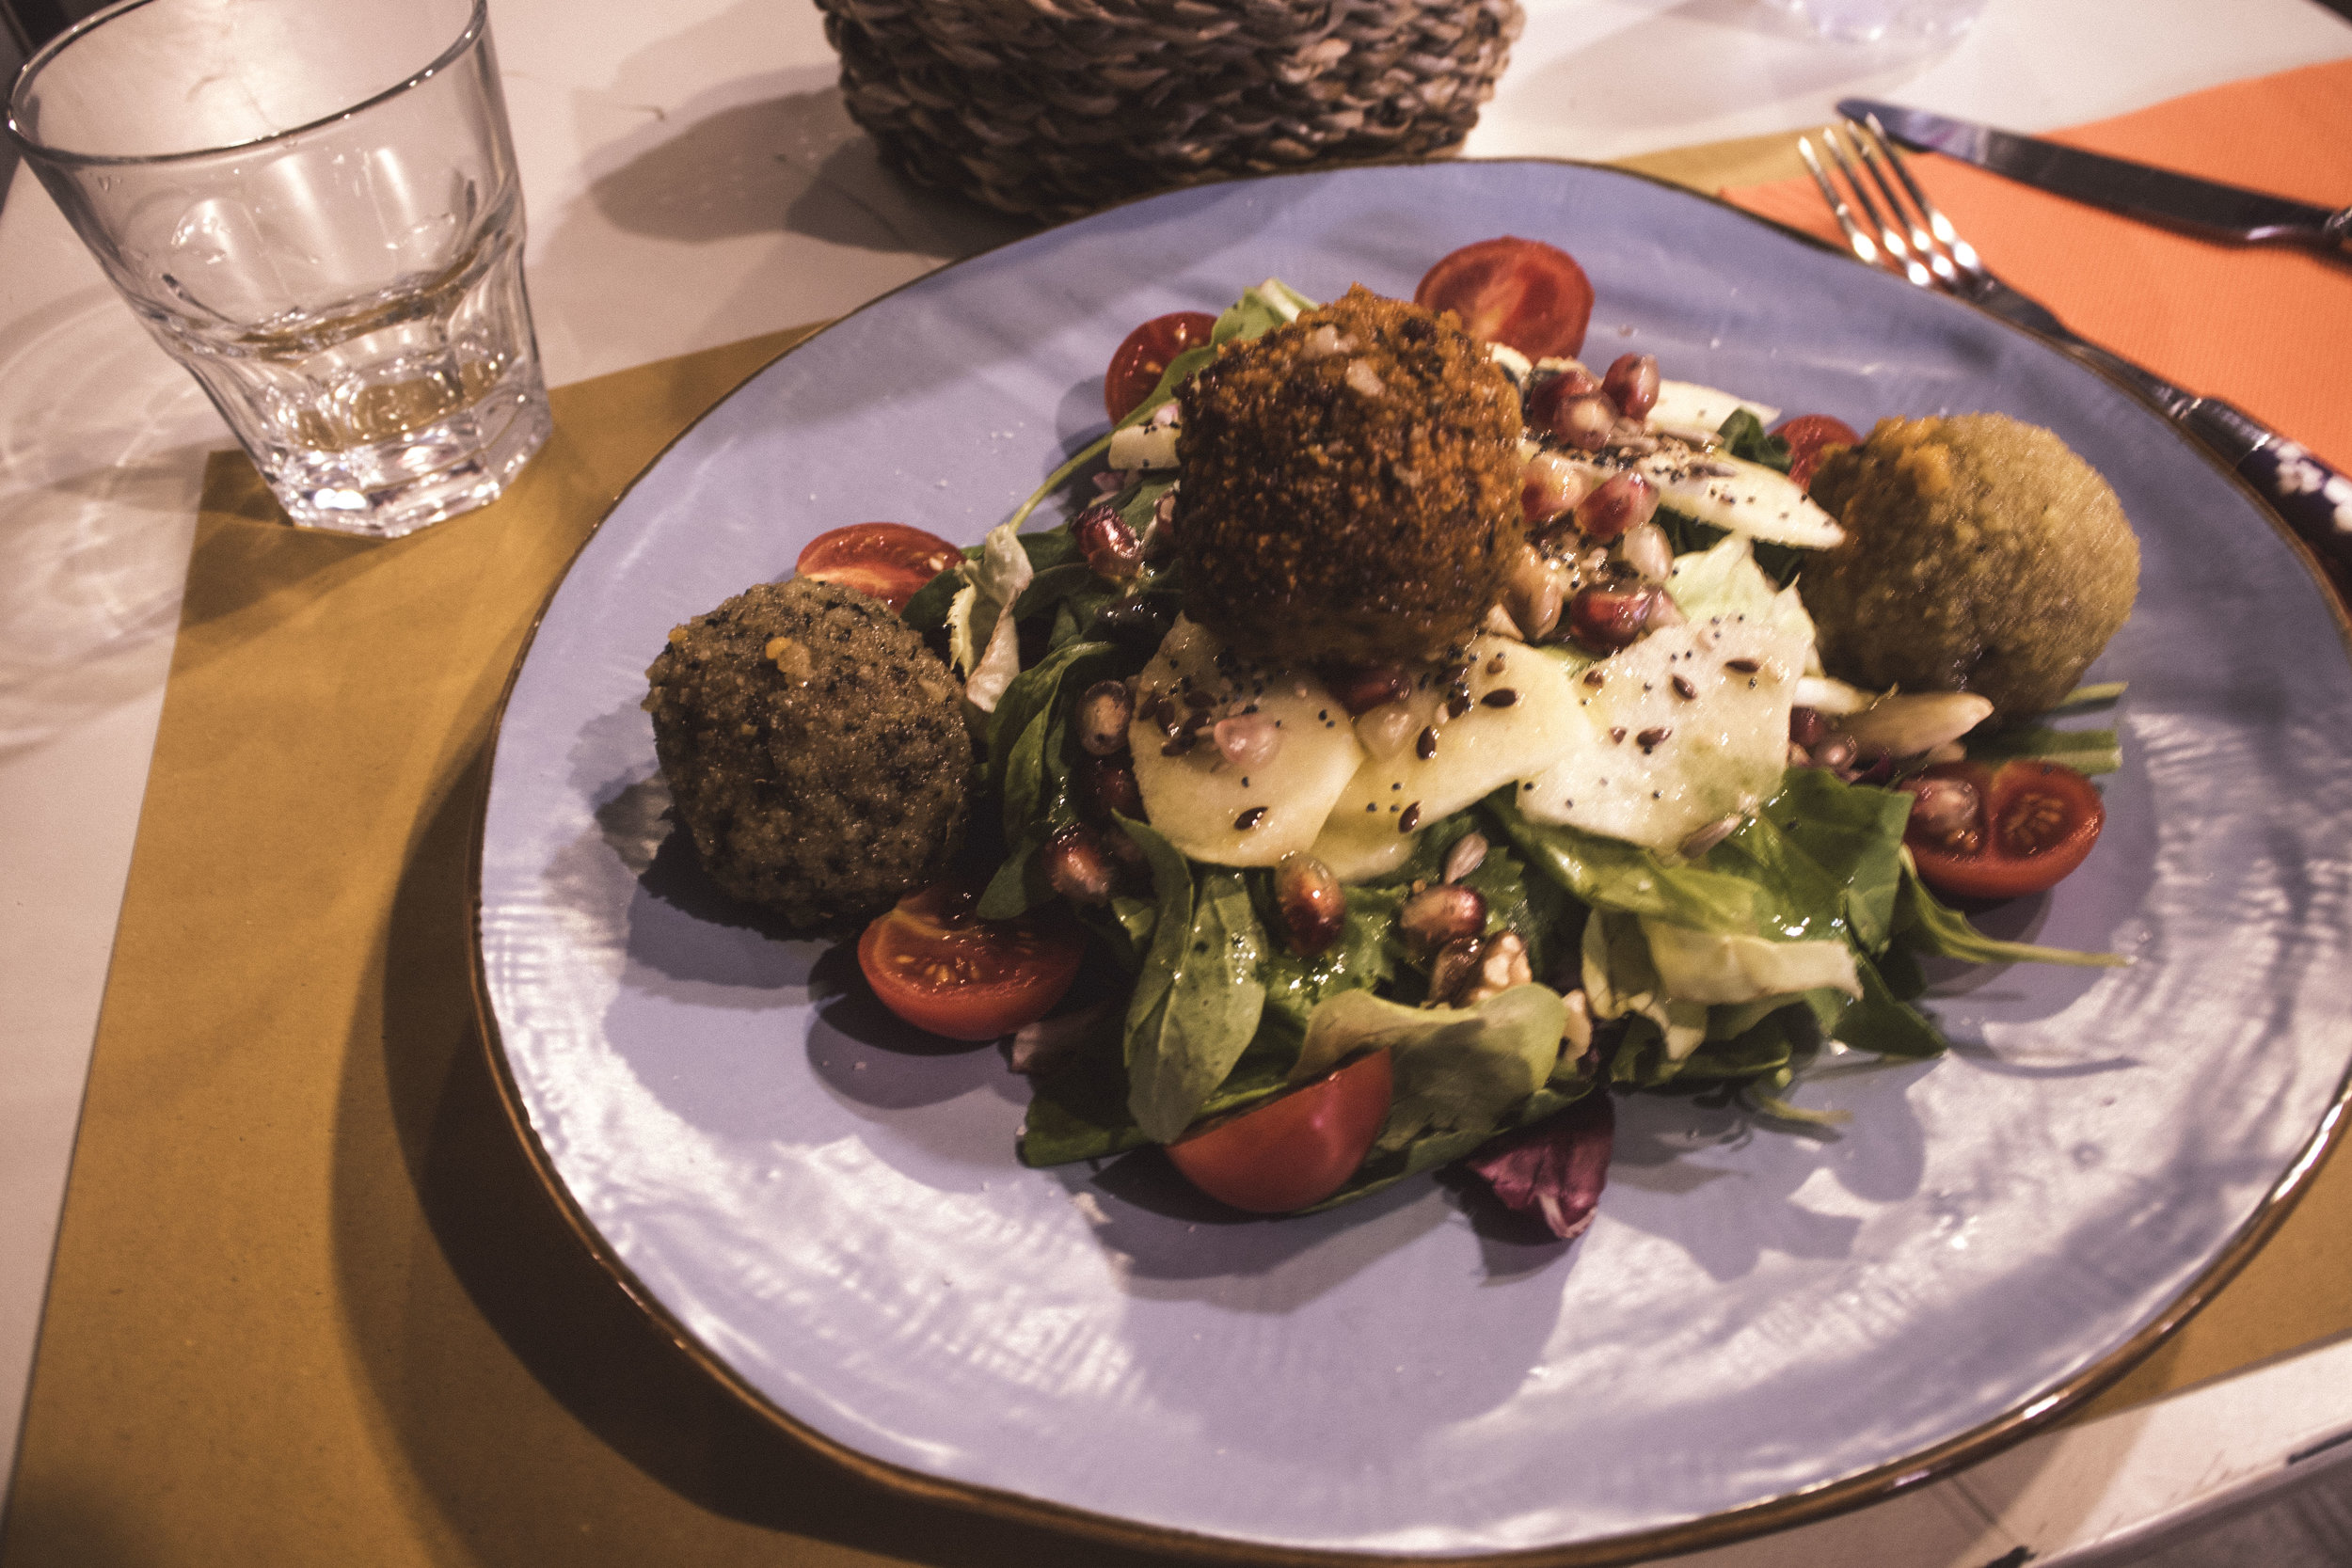 The best meatballs atop a delicious salad at Obla Di Obla Da restaurant in Rome, Italy